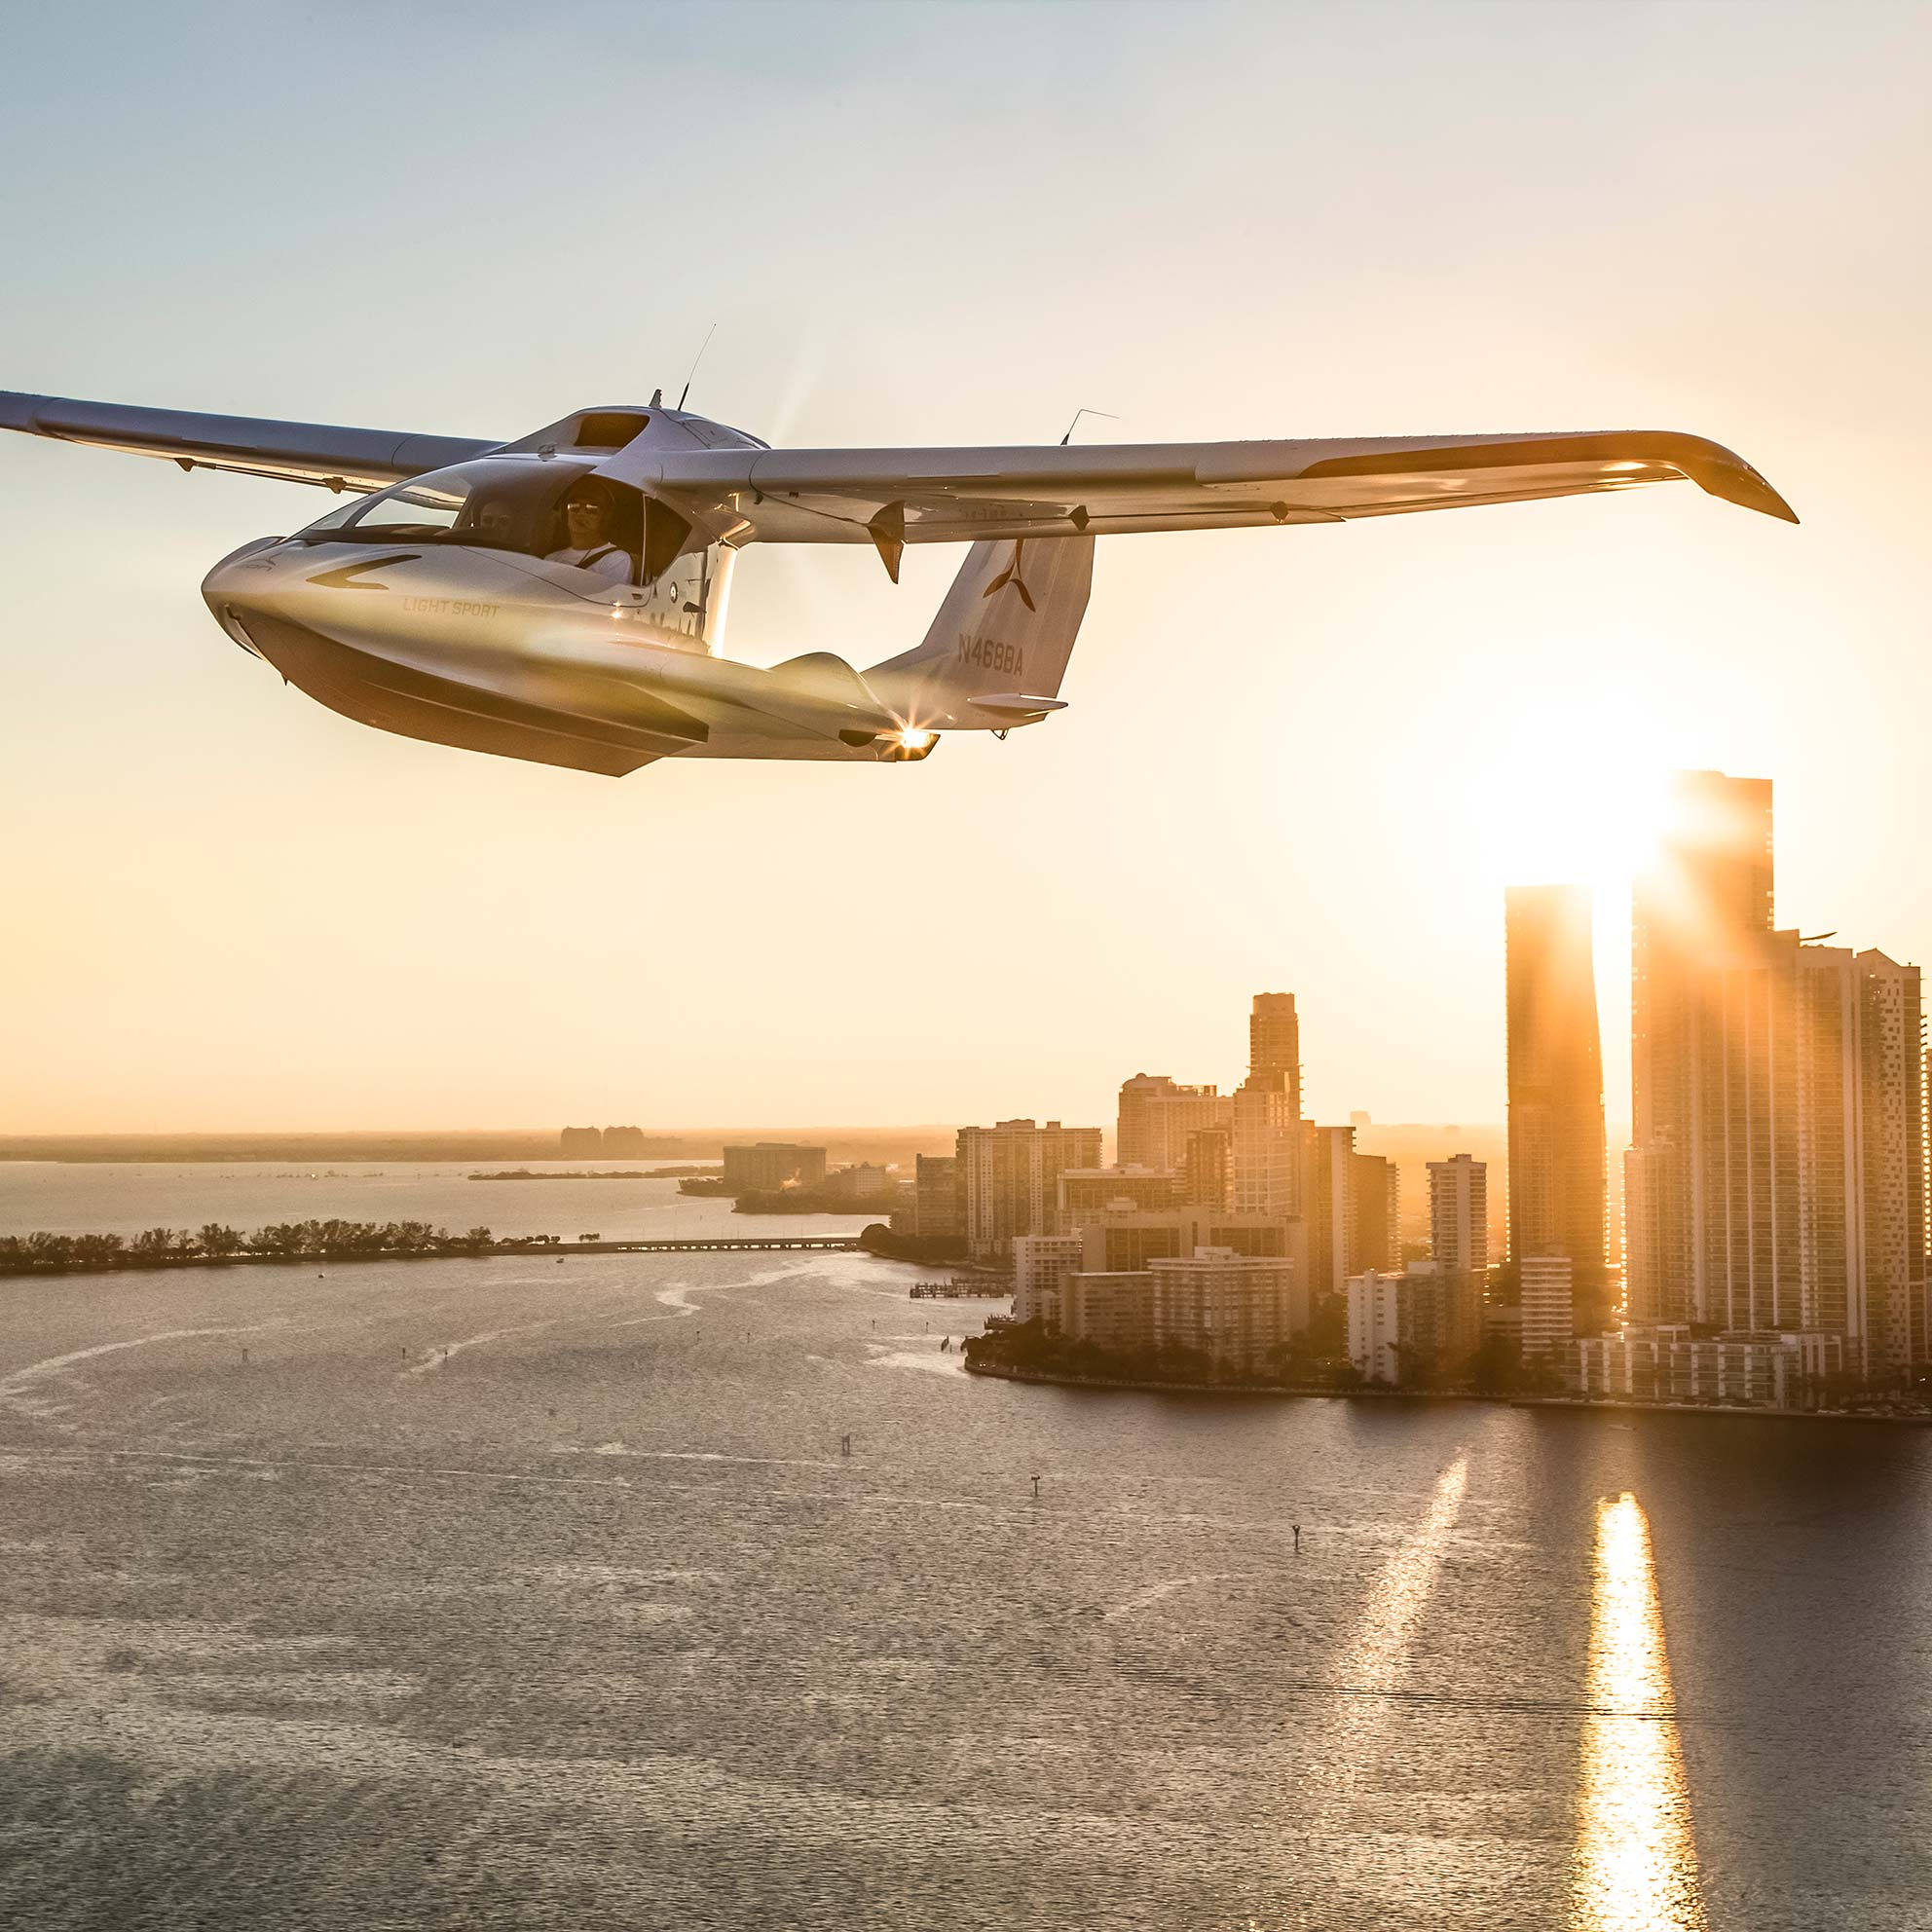 Art Meets Aviation | Learn more about the ICON A5 Light